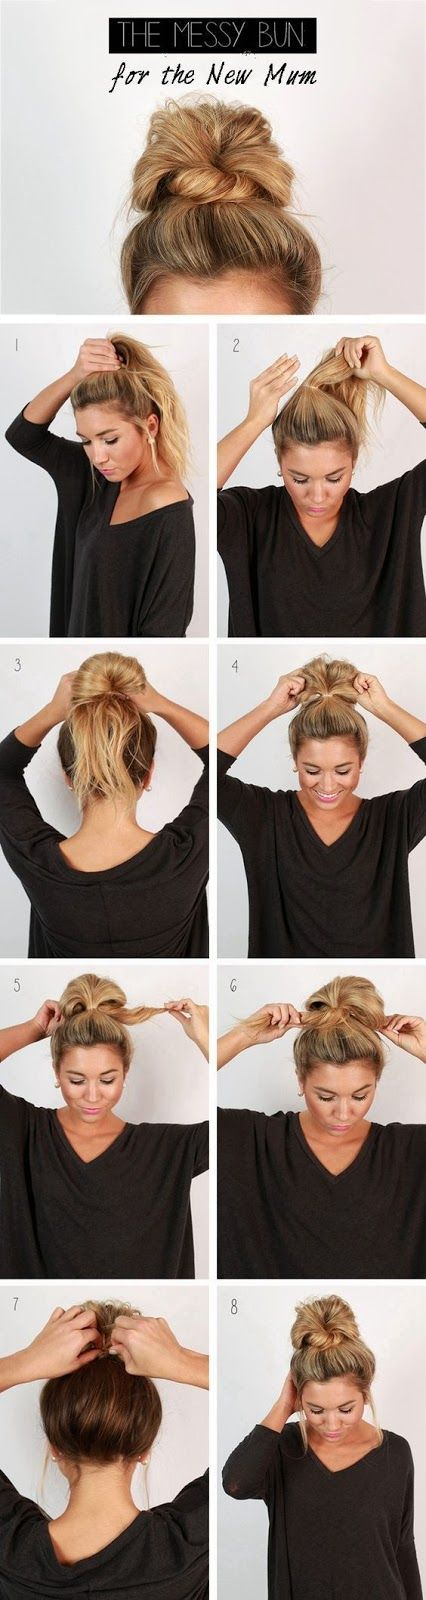 Hairstyles You Can Make In Less Than 2 Mins Cute Hairstyles Hair